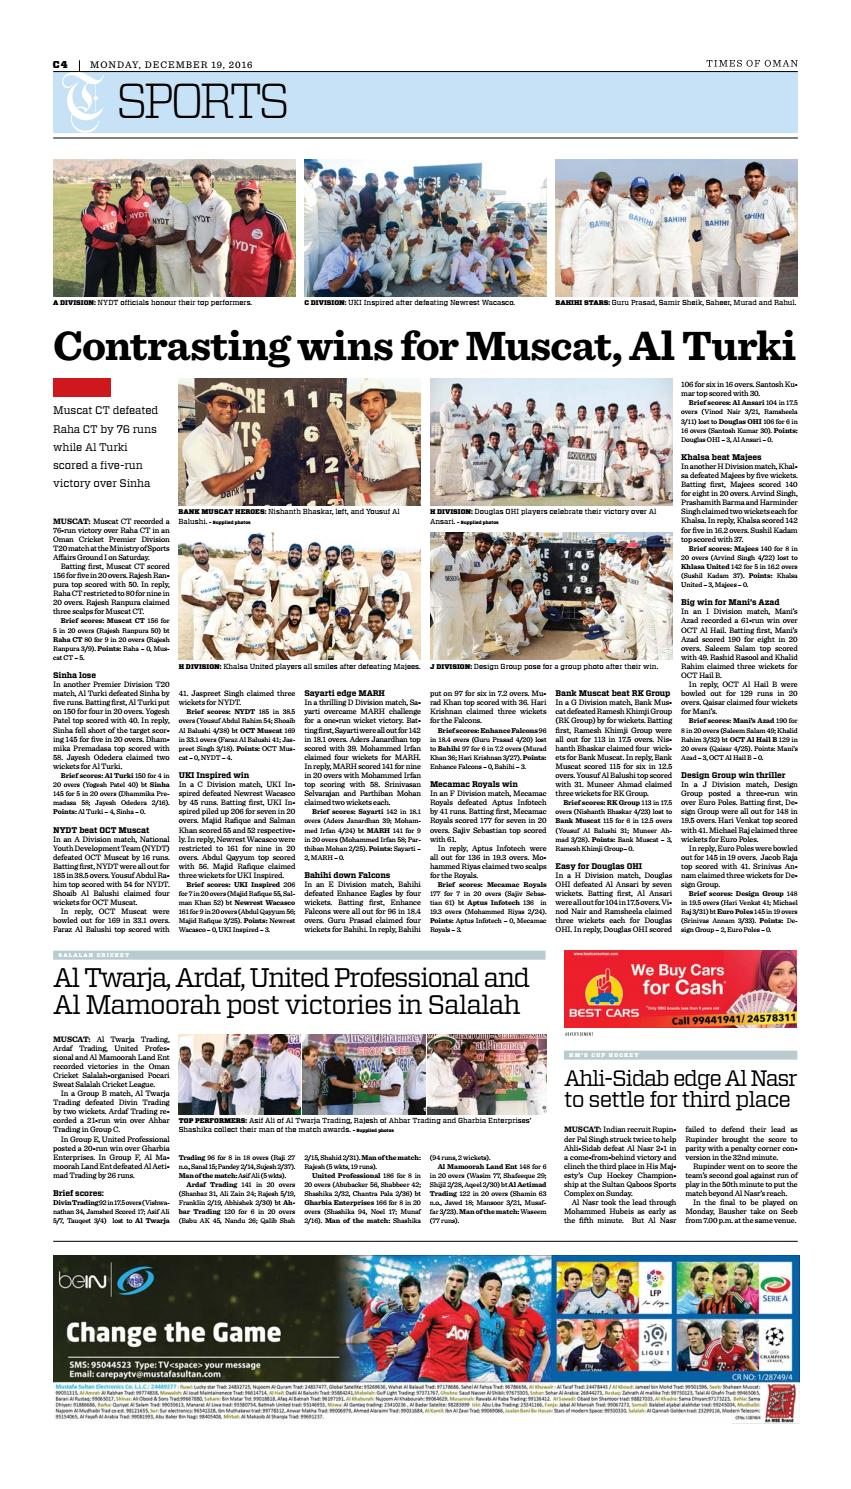 Times of Oman - December 19, 2016 by Muscat Media Group - issuu